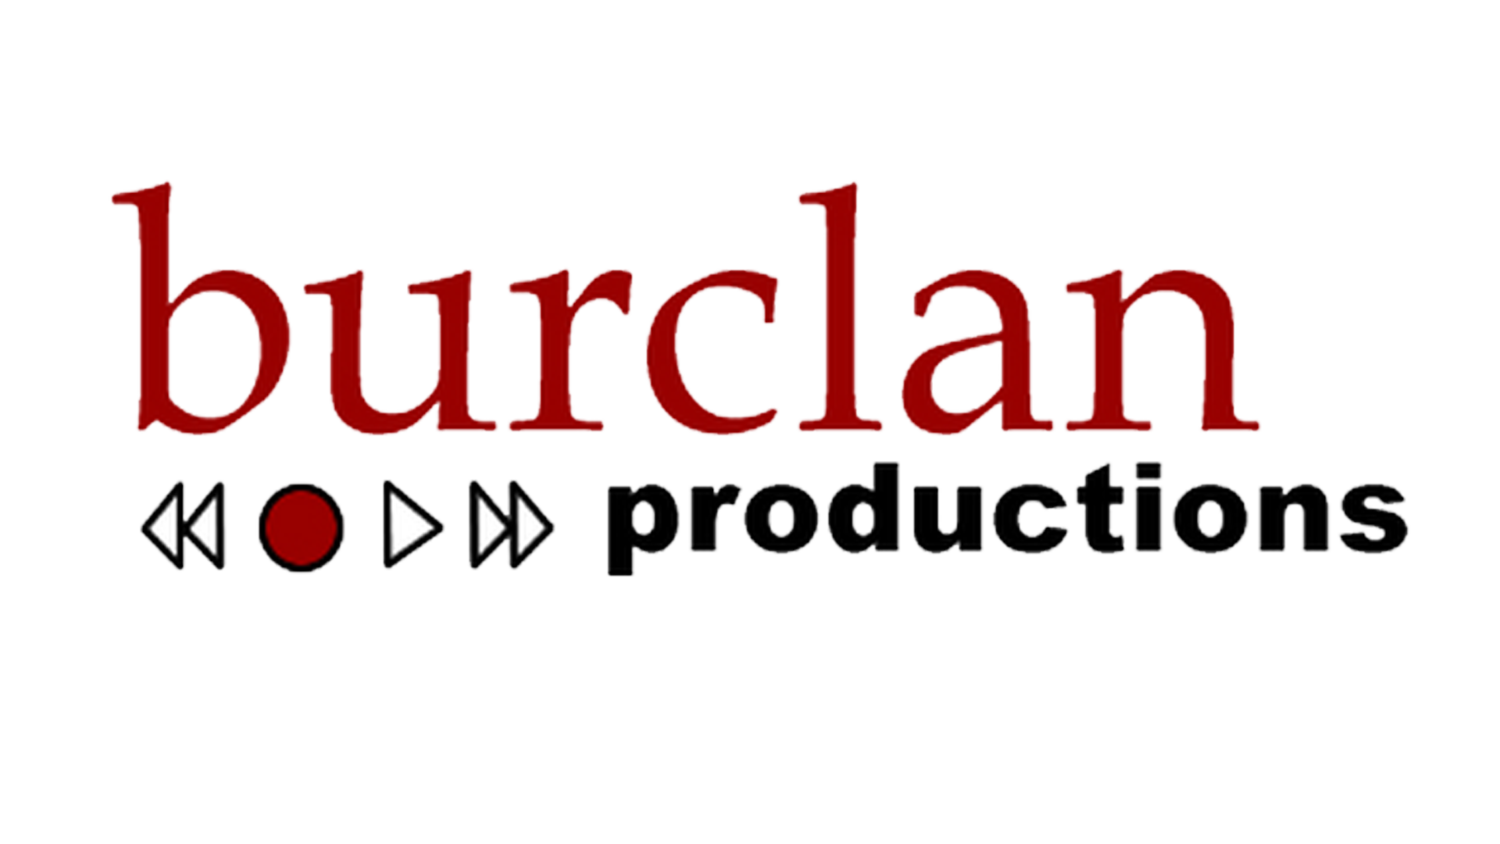 Burclan Productions | Boston Video Production Company | Audio Production | Corporate Video Production